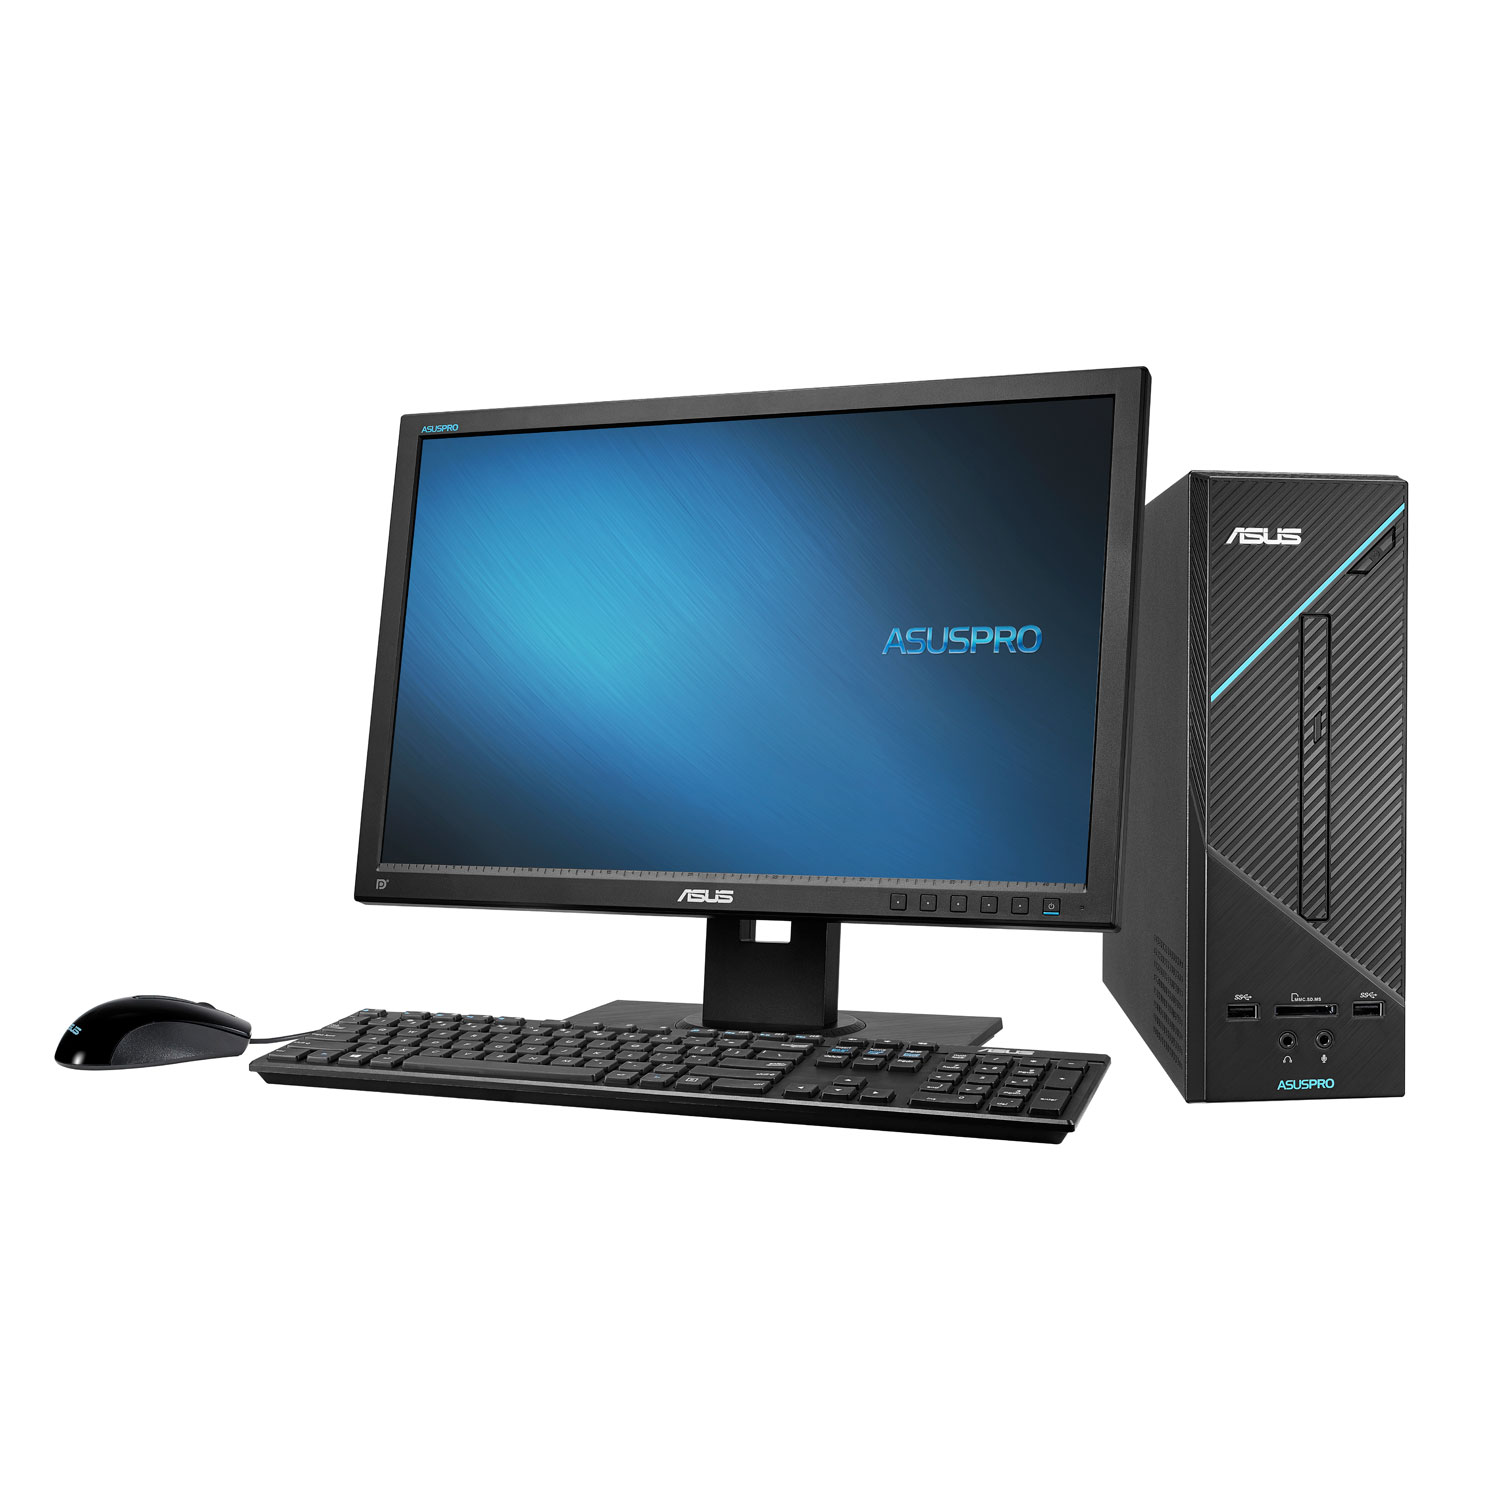 asus d320sf i56400006 pc de bureau asus sur. Black Bedroom Furniture Sets. Home Design Ideas